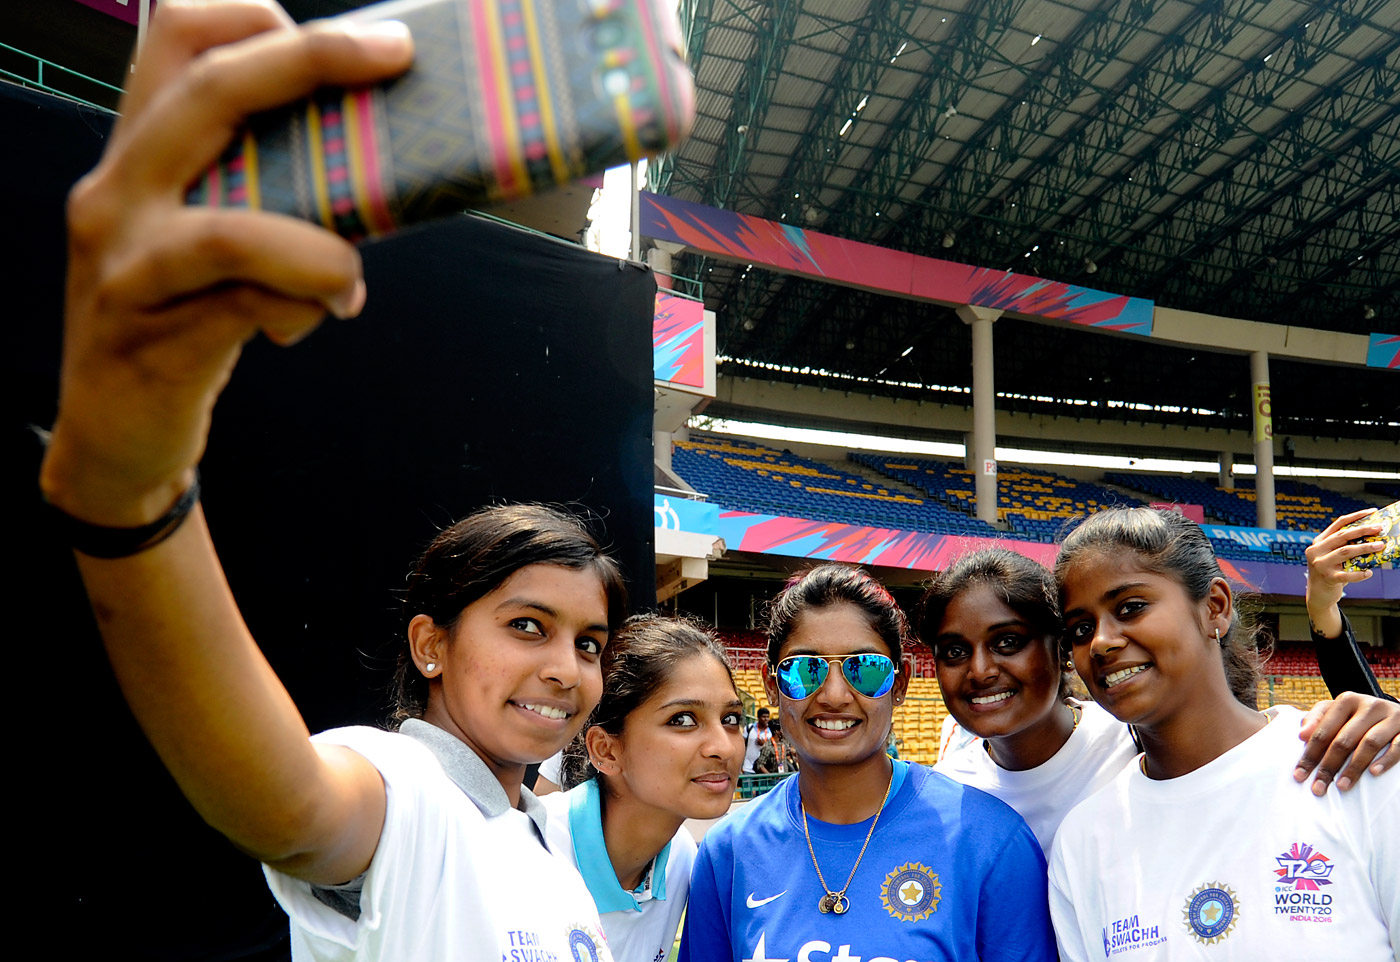 Mithali with fans at the 2016 World T20 in Bangalore